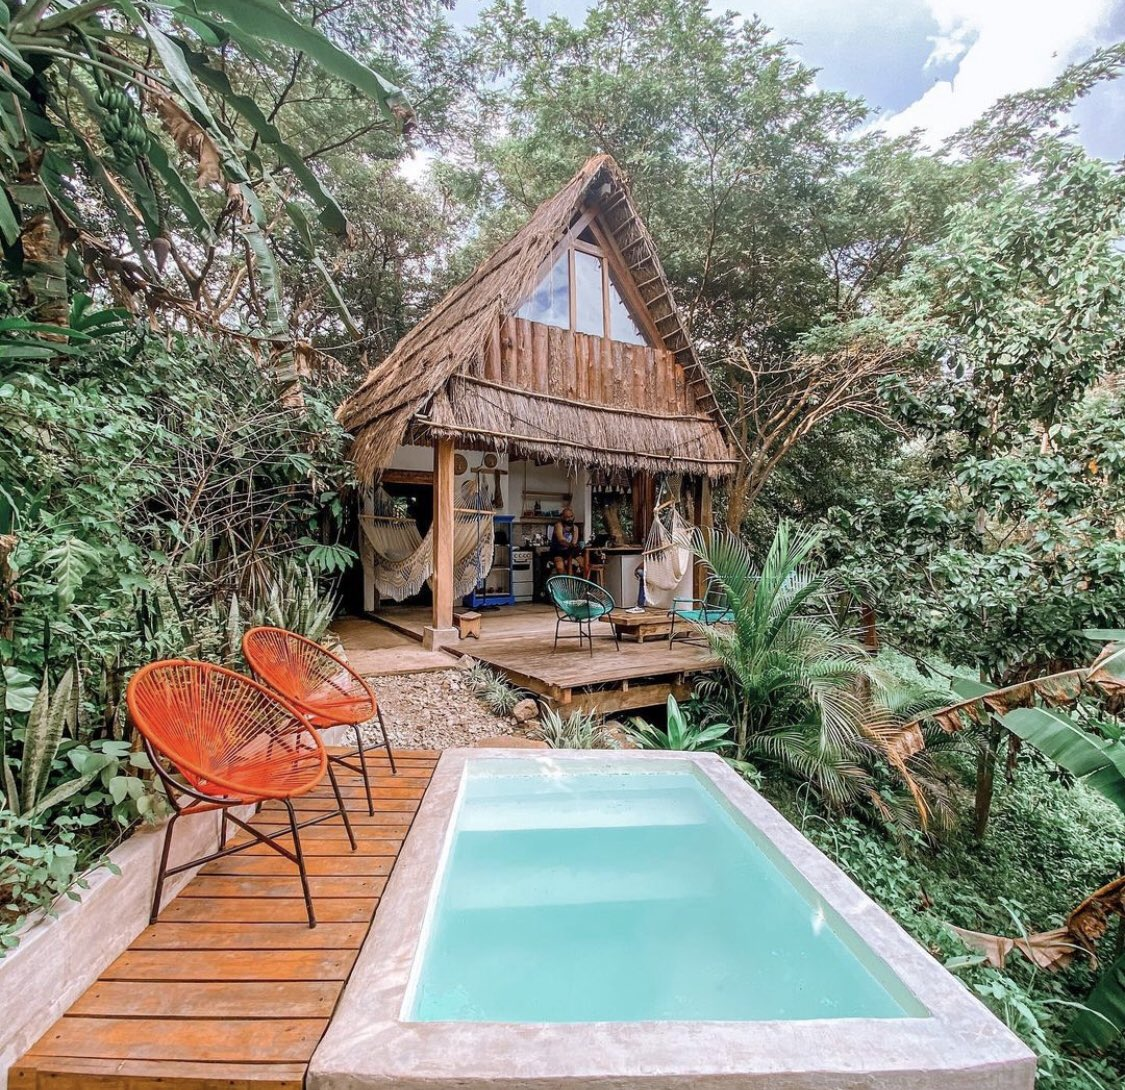 Replying to @SalvadoranPride: The Jaraguah bungalow in Chalatenango is perfect for nature lovers visiting El Salvador. 🇸🇻